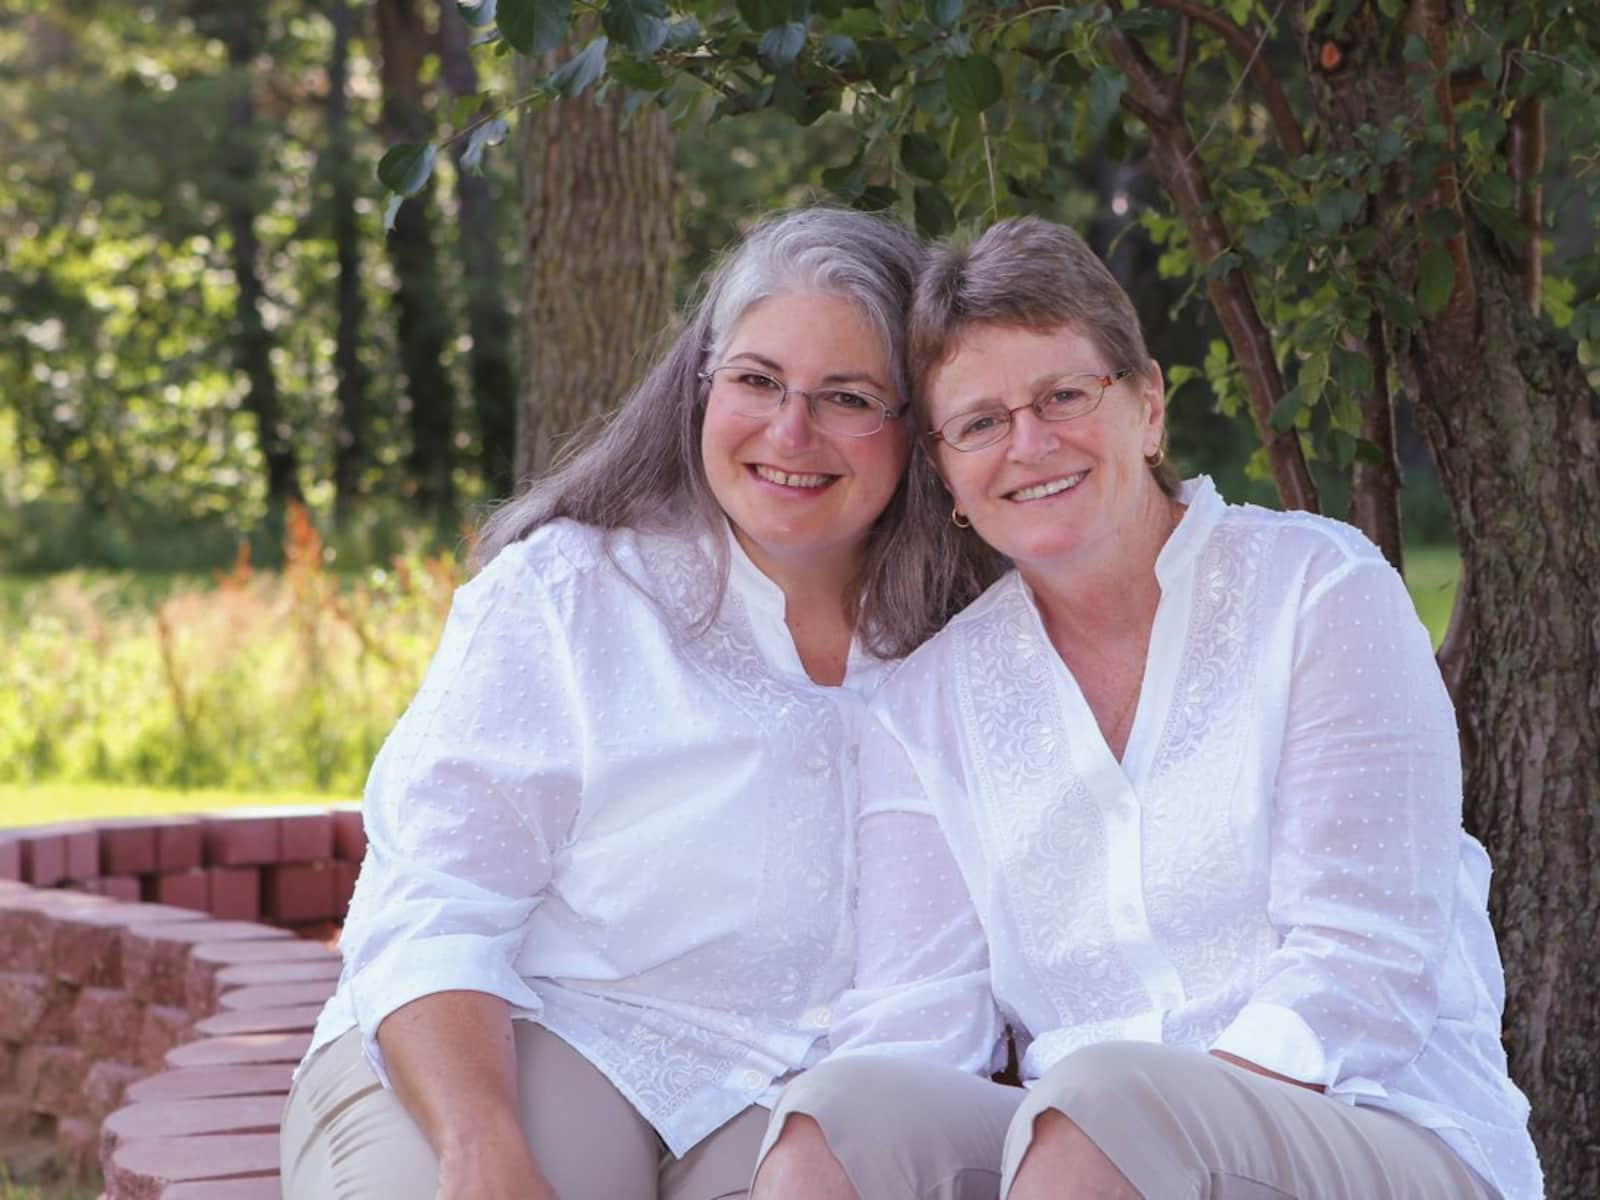 Janet & Deb from Tulsa, Oklahoma, United States